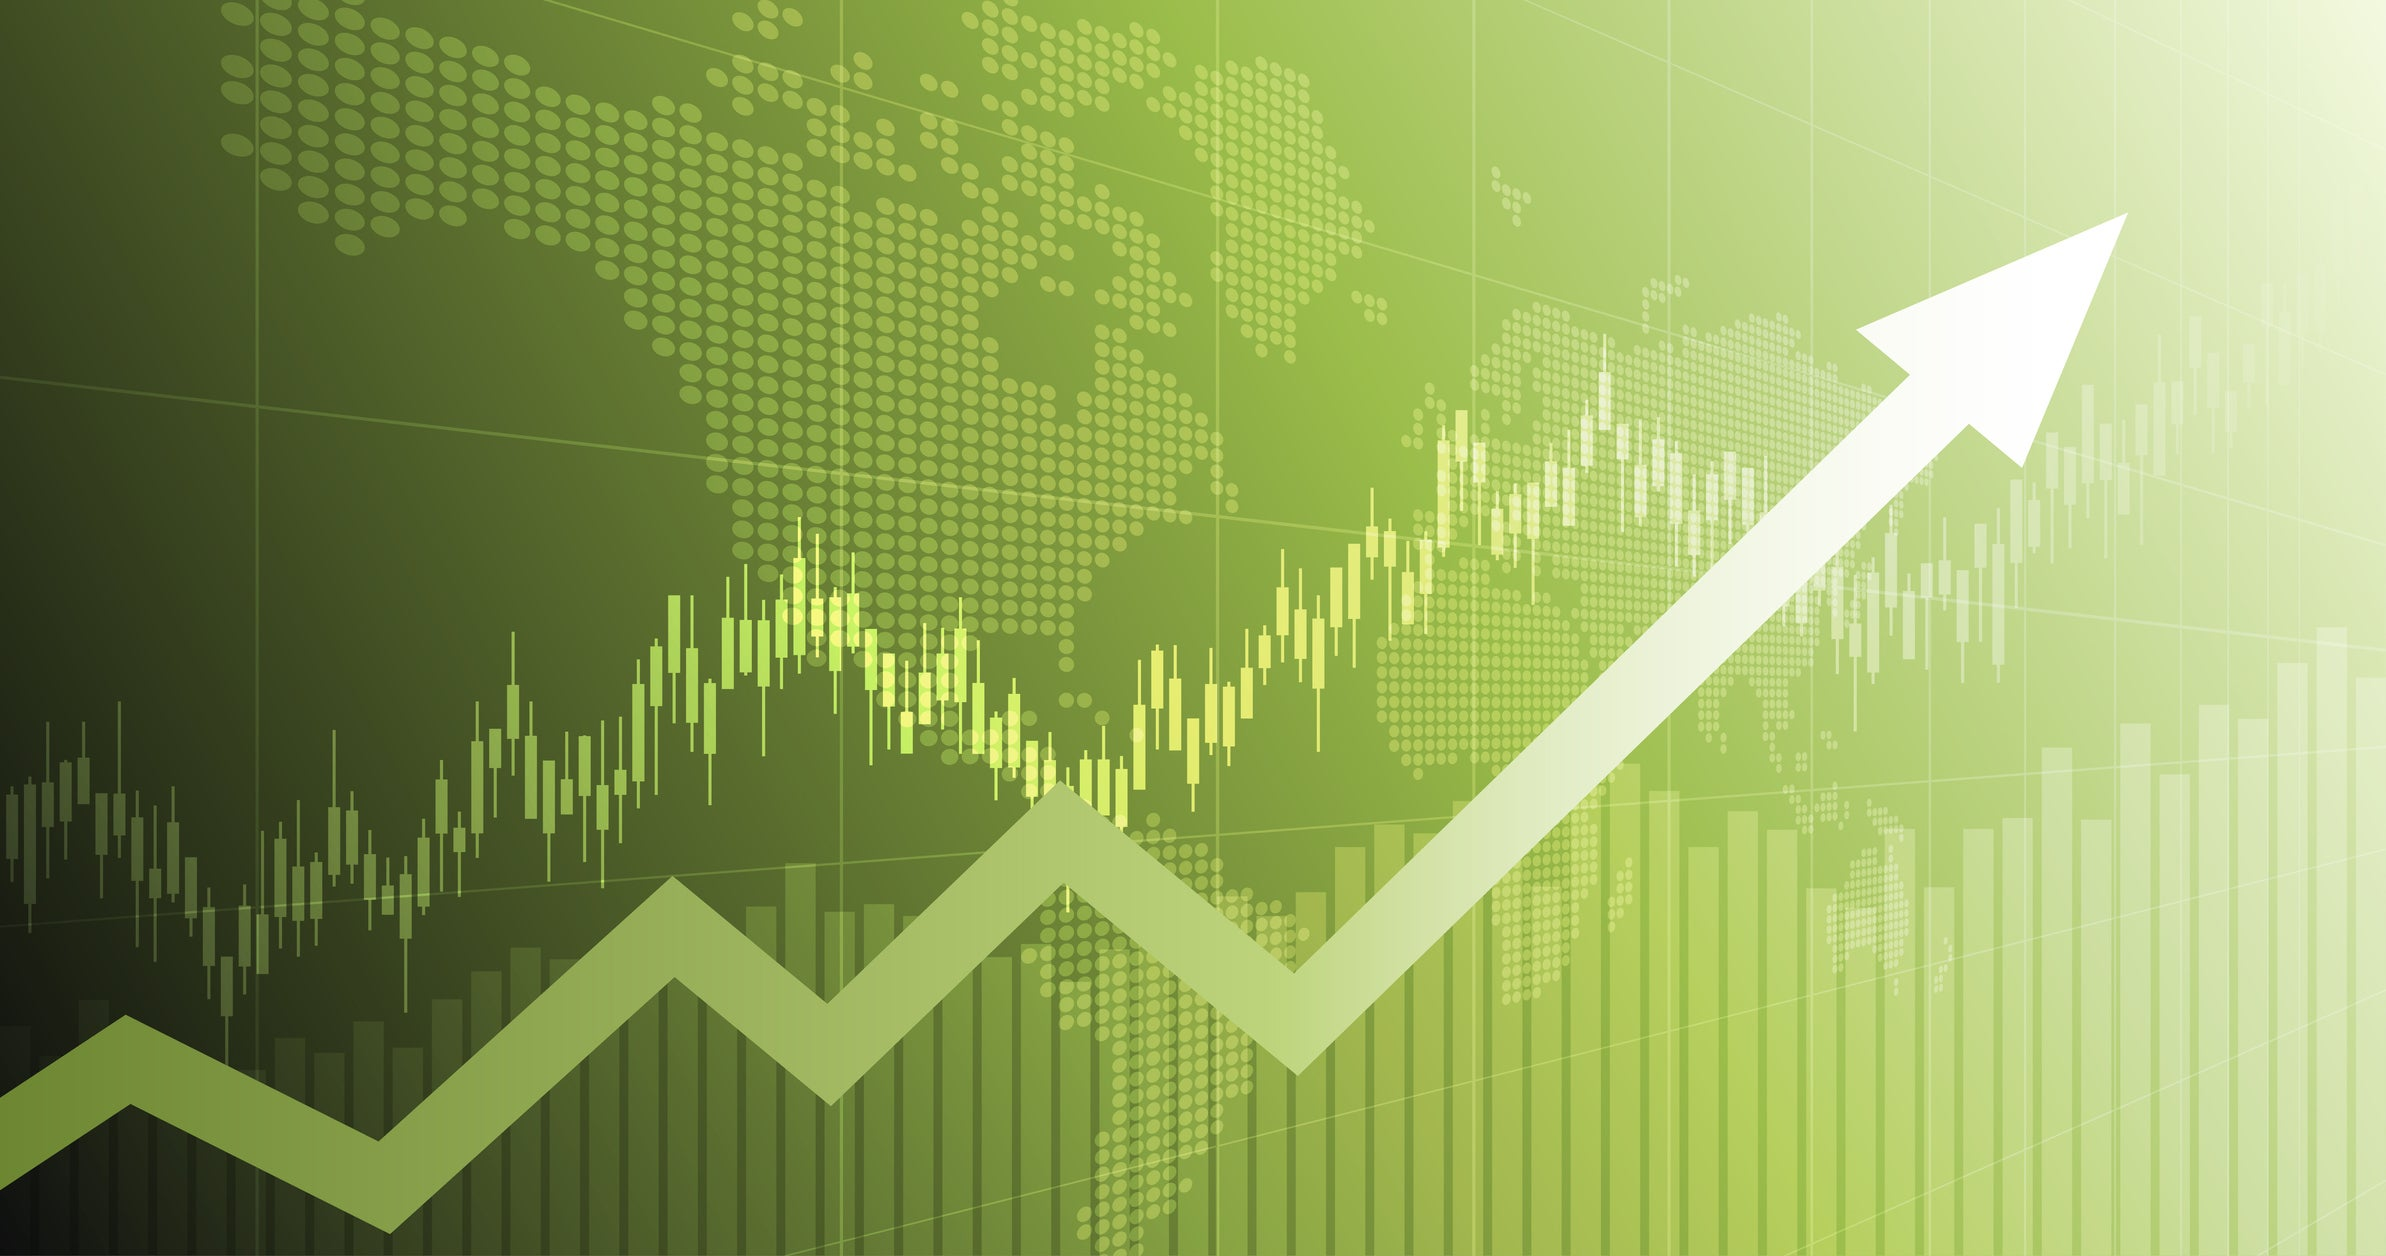 These 3 Stocks Are Absurdly Overvalued Right Now | The ...